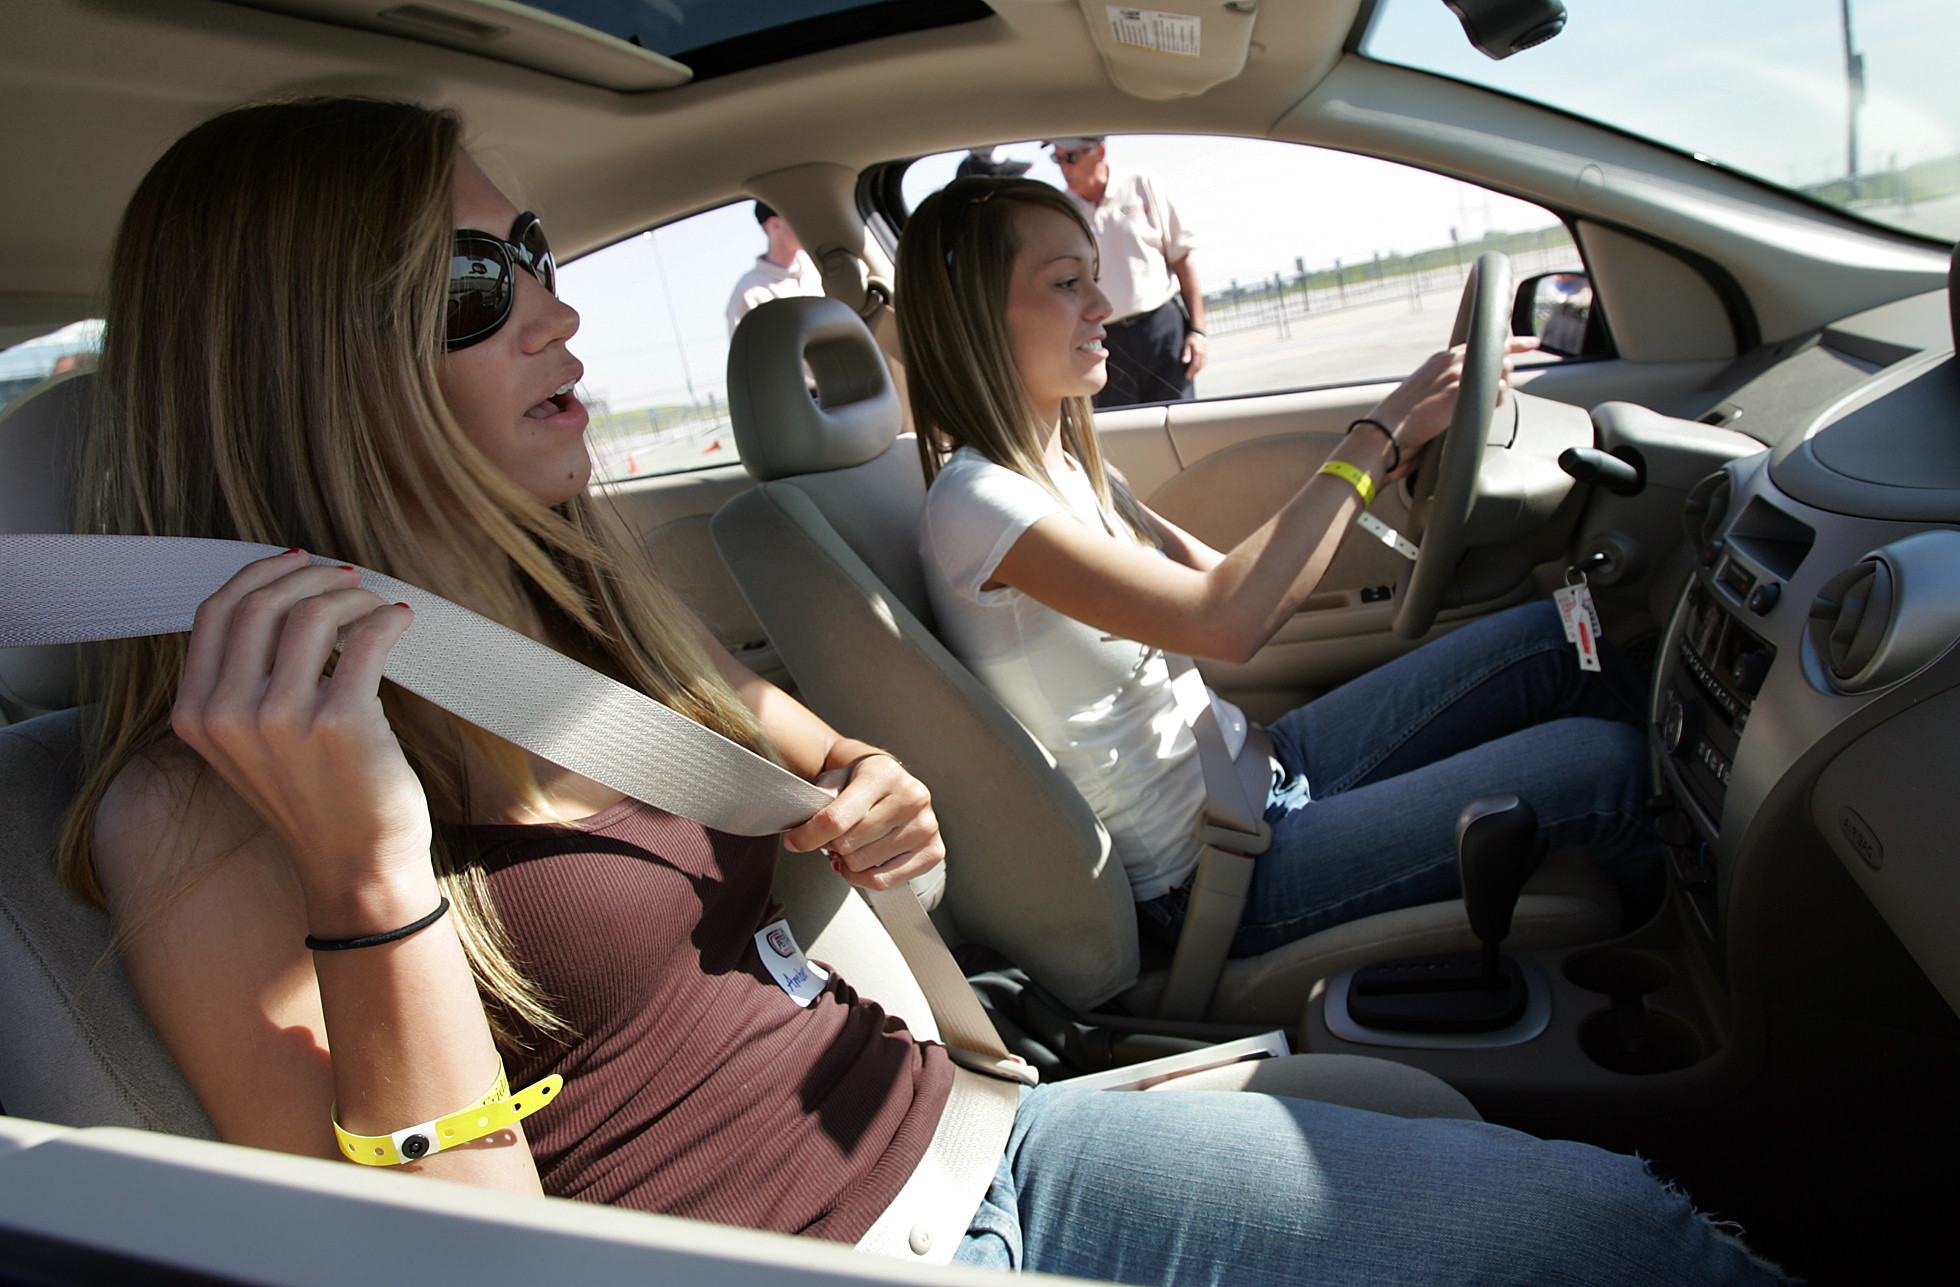 Most Teenagers Killed In Car Crashes Were Not Wearing Seat